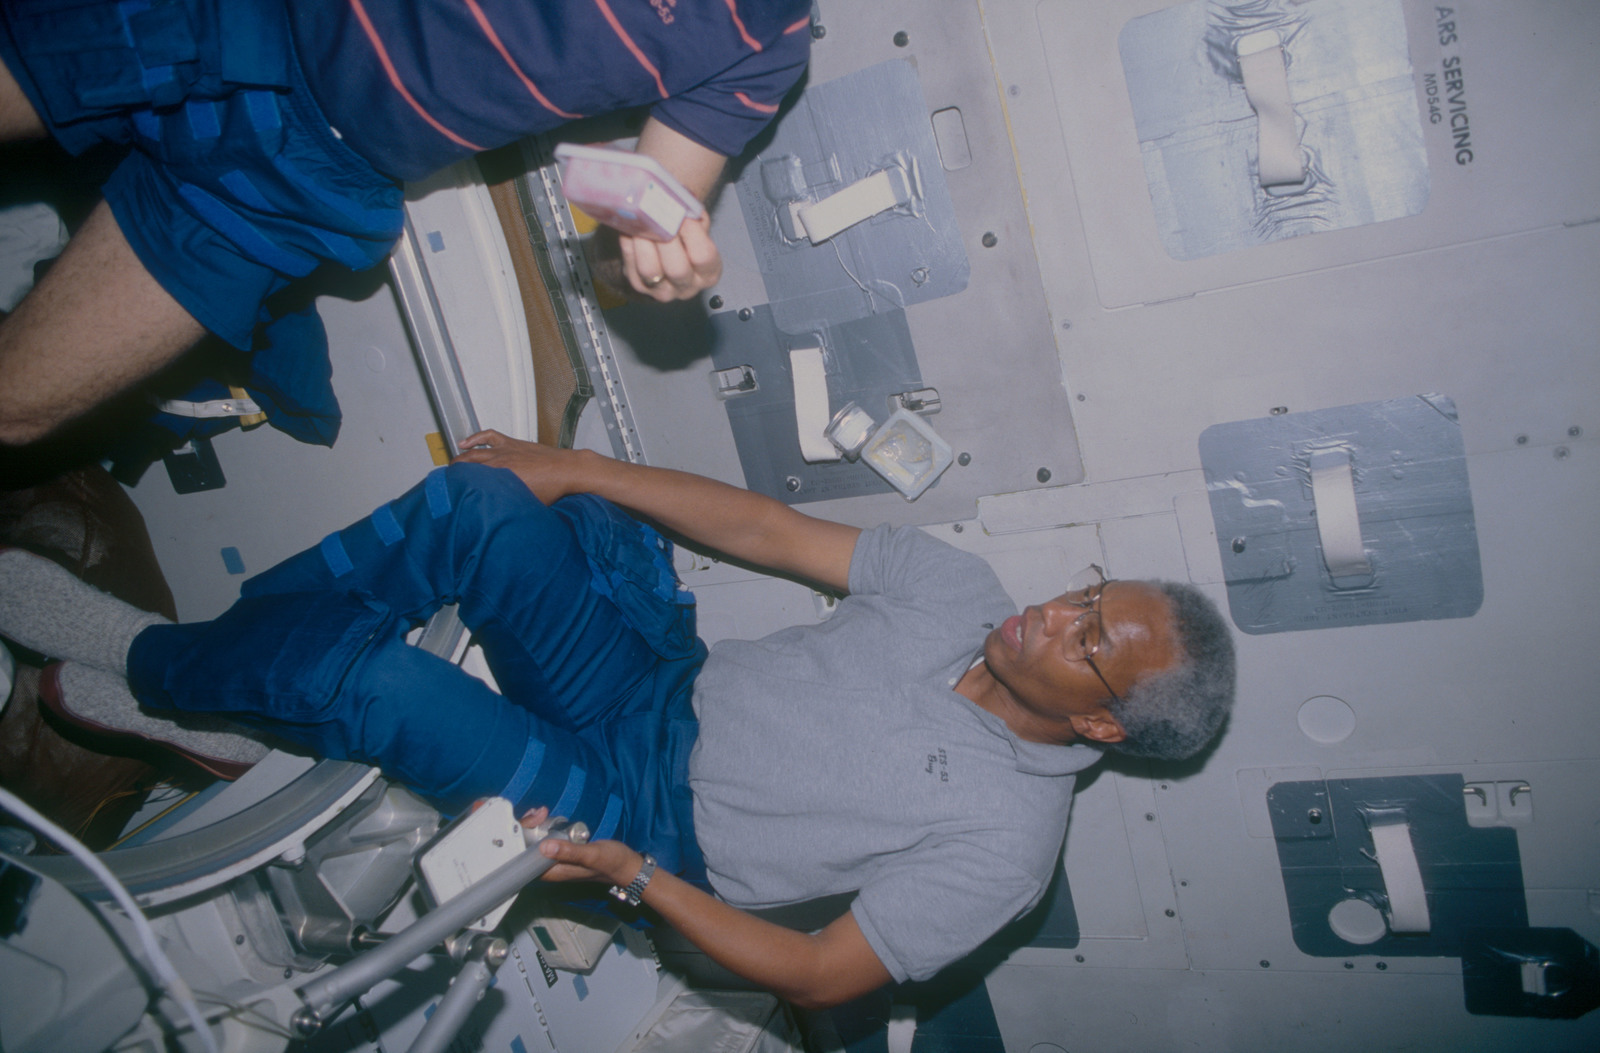 STS053-10-025 - STS-053 - Crewmember in the MDDK